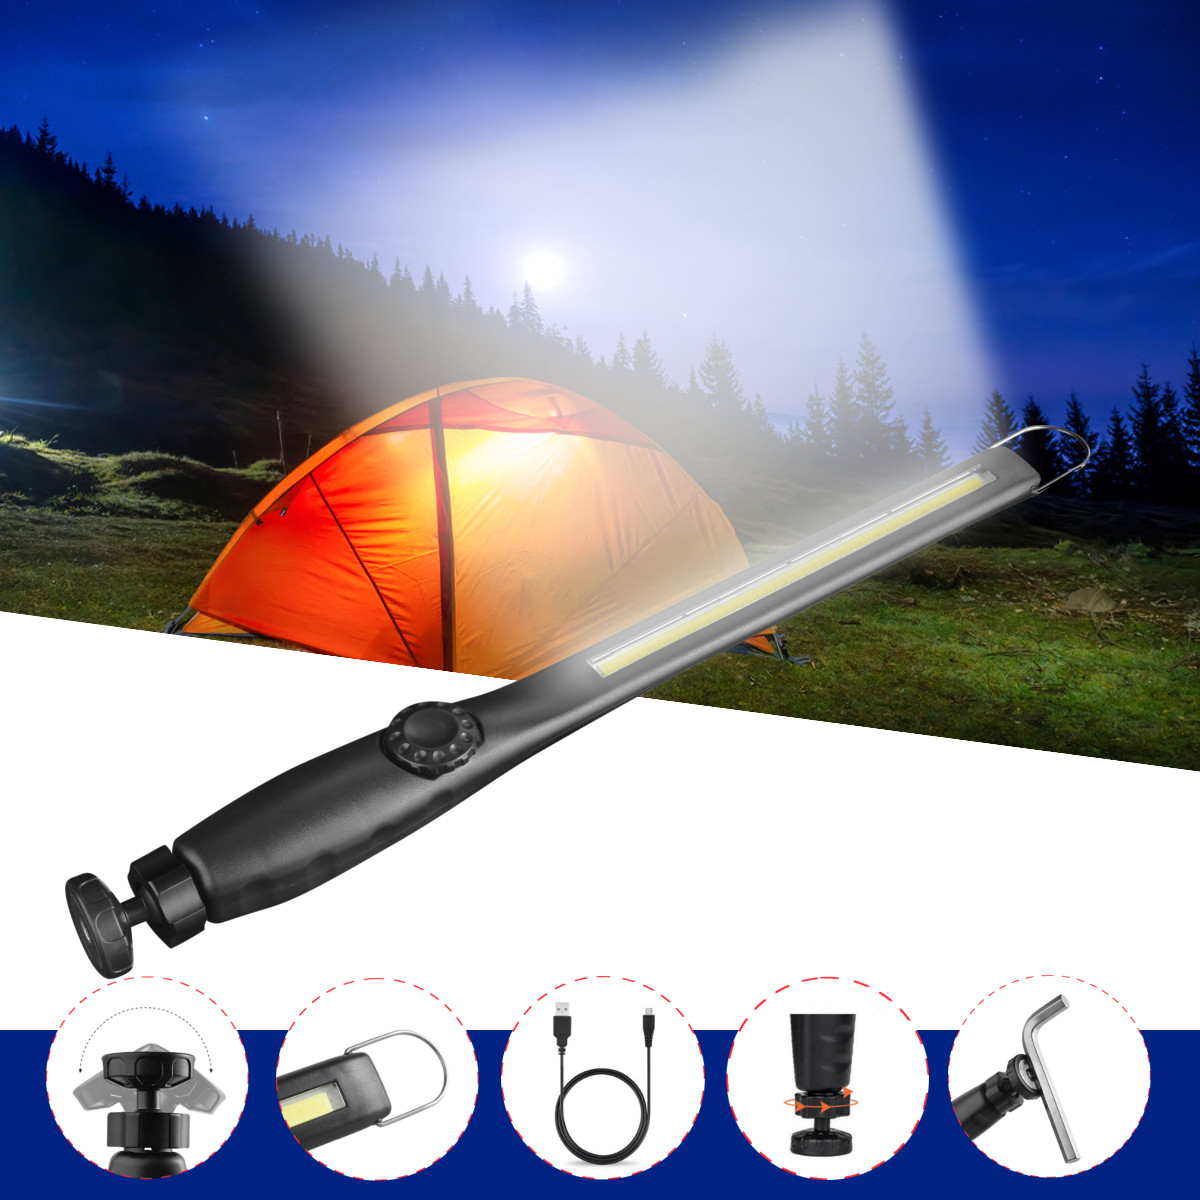 1000Lumens USB Rechargeable COB LED Flashlight Work Light Folding Lamp Inspection Torch with Magnetic Clip for Outdoor Camping Household Workshop 360° Revolving